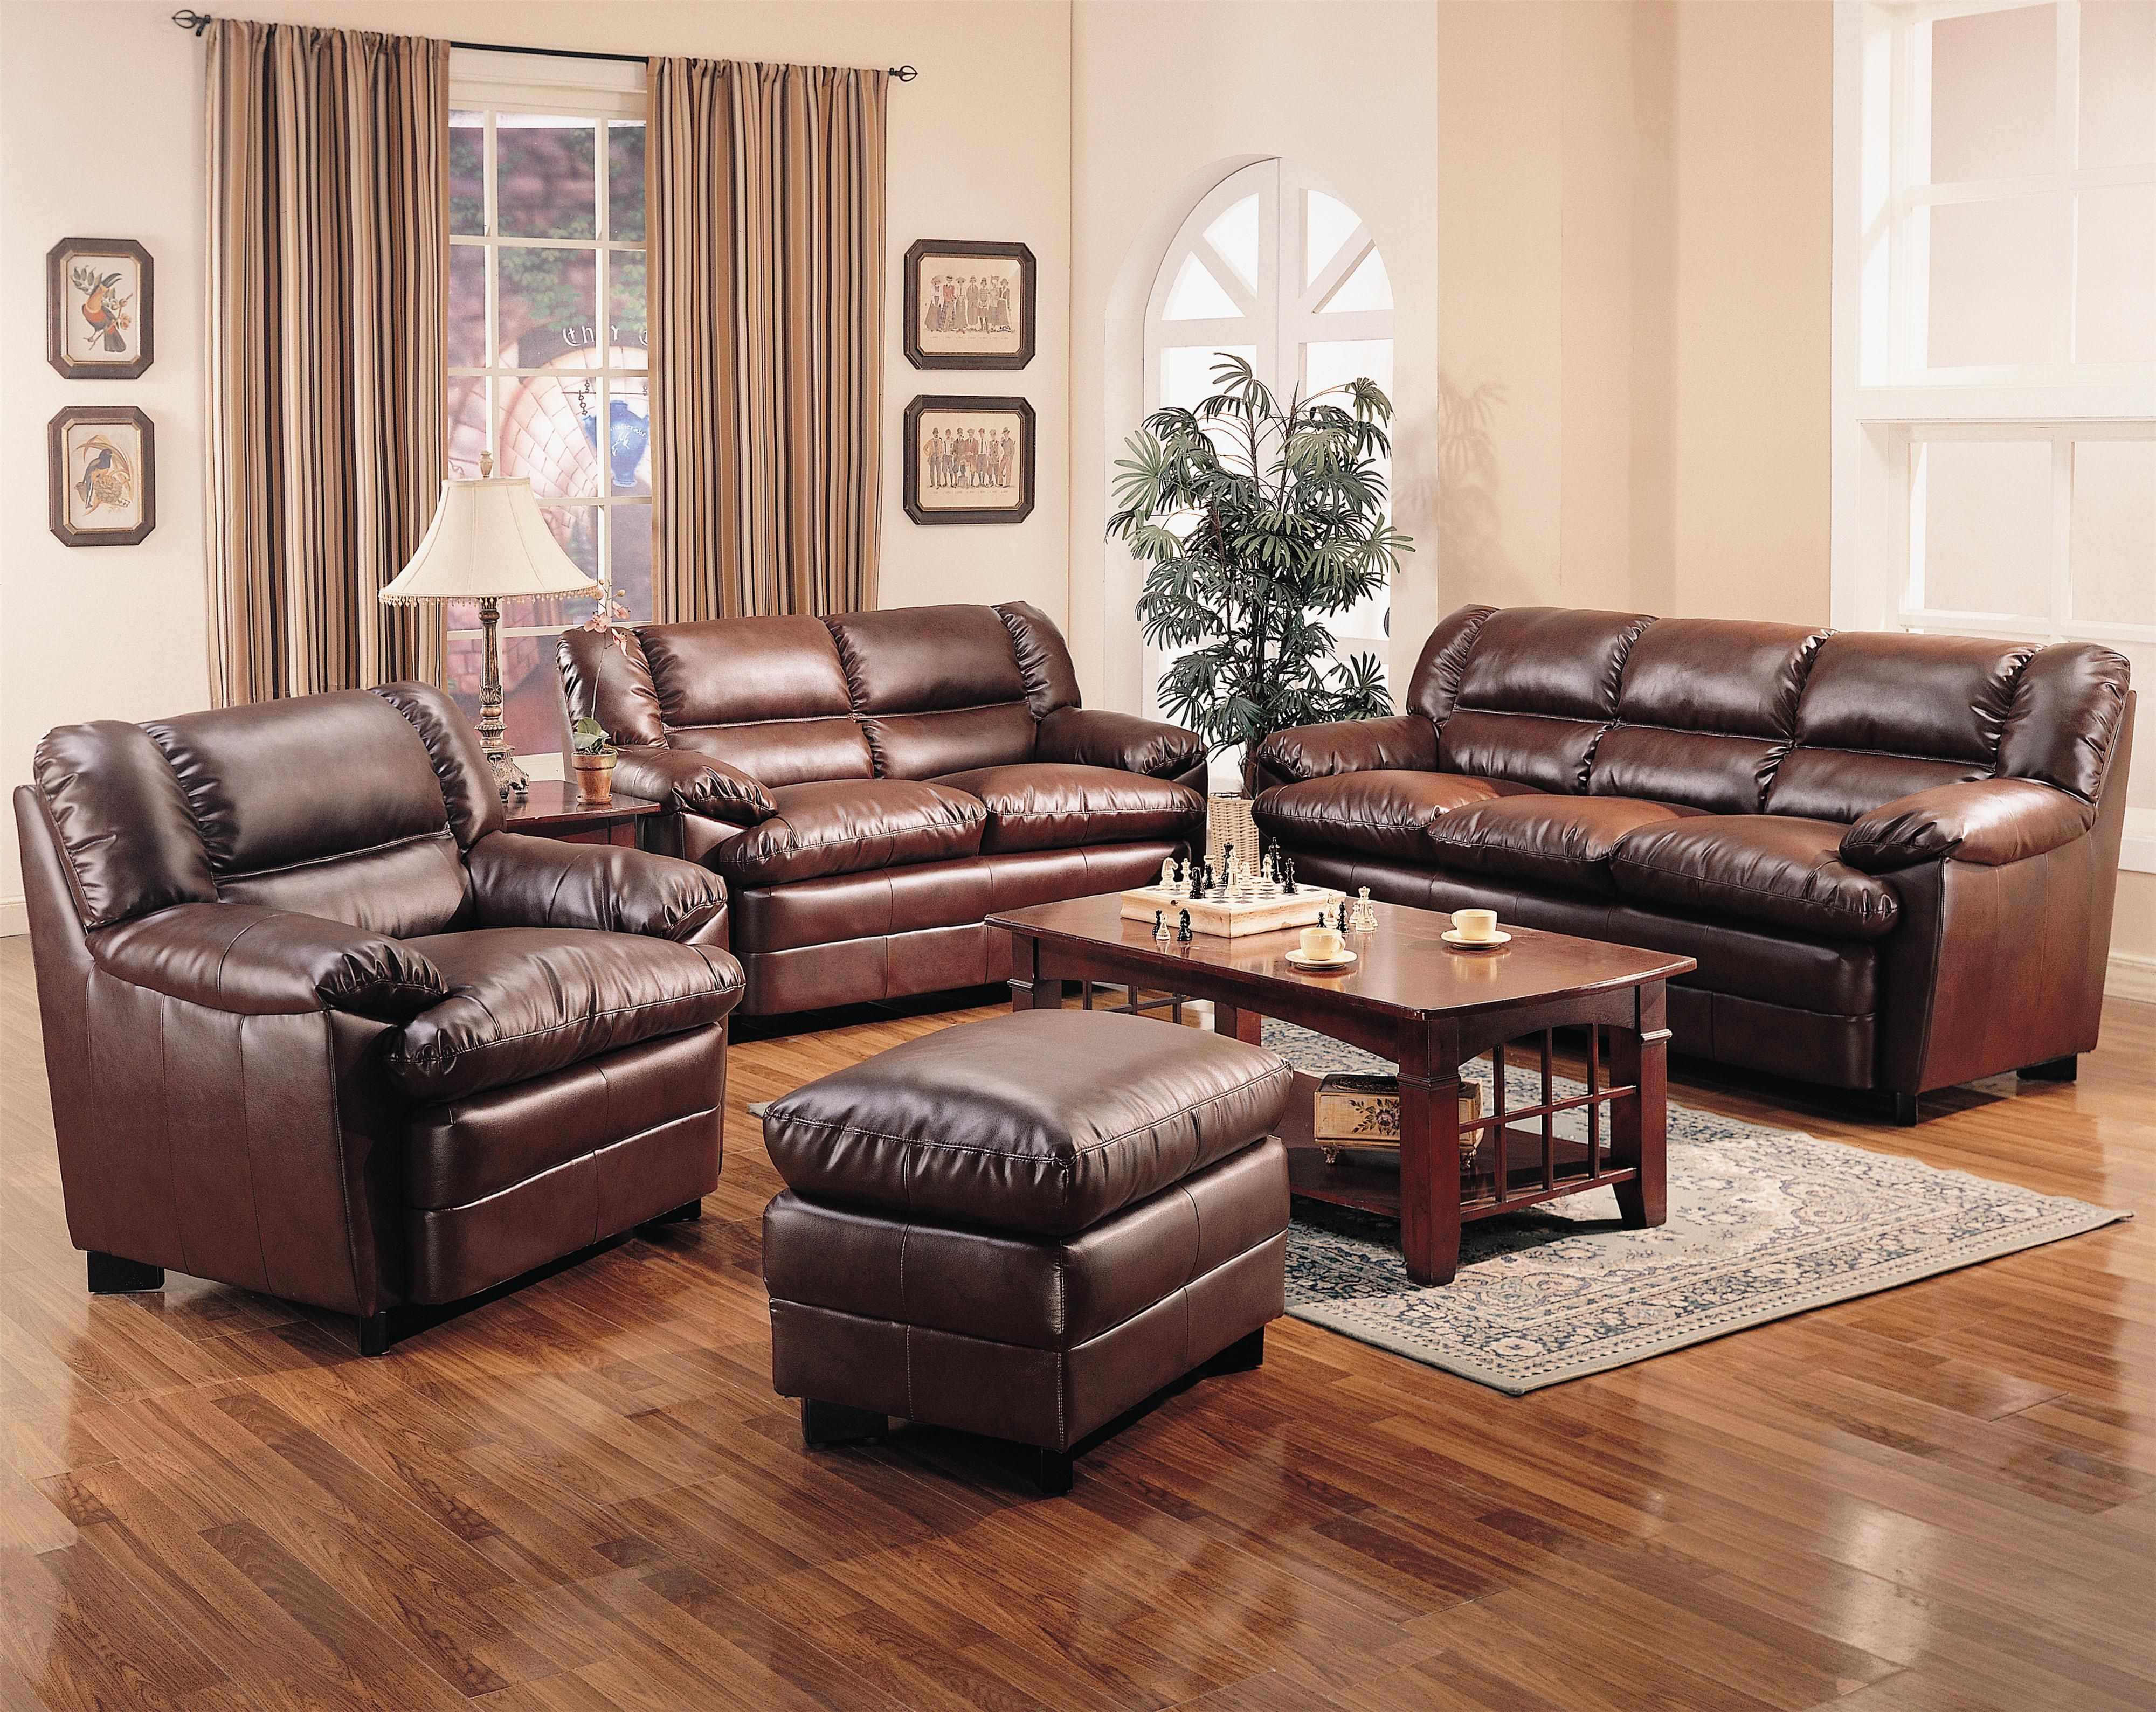 501911Set - Harper Overstuffed Leather Sofa with Pillow Arms ...